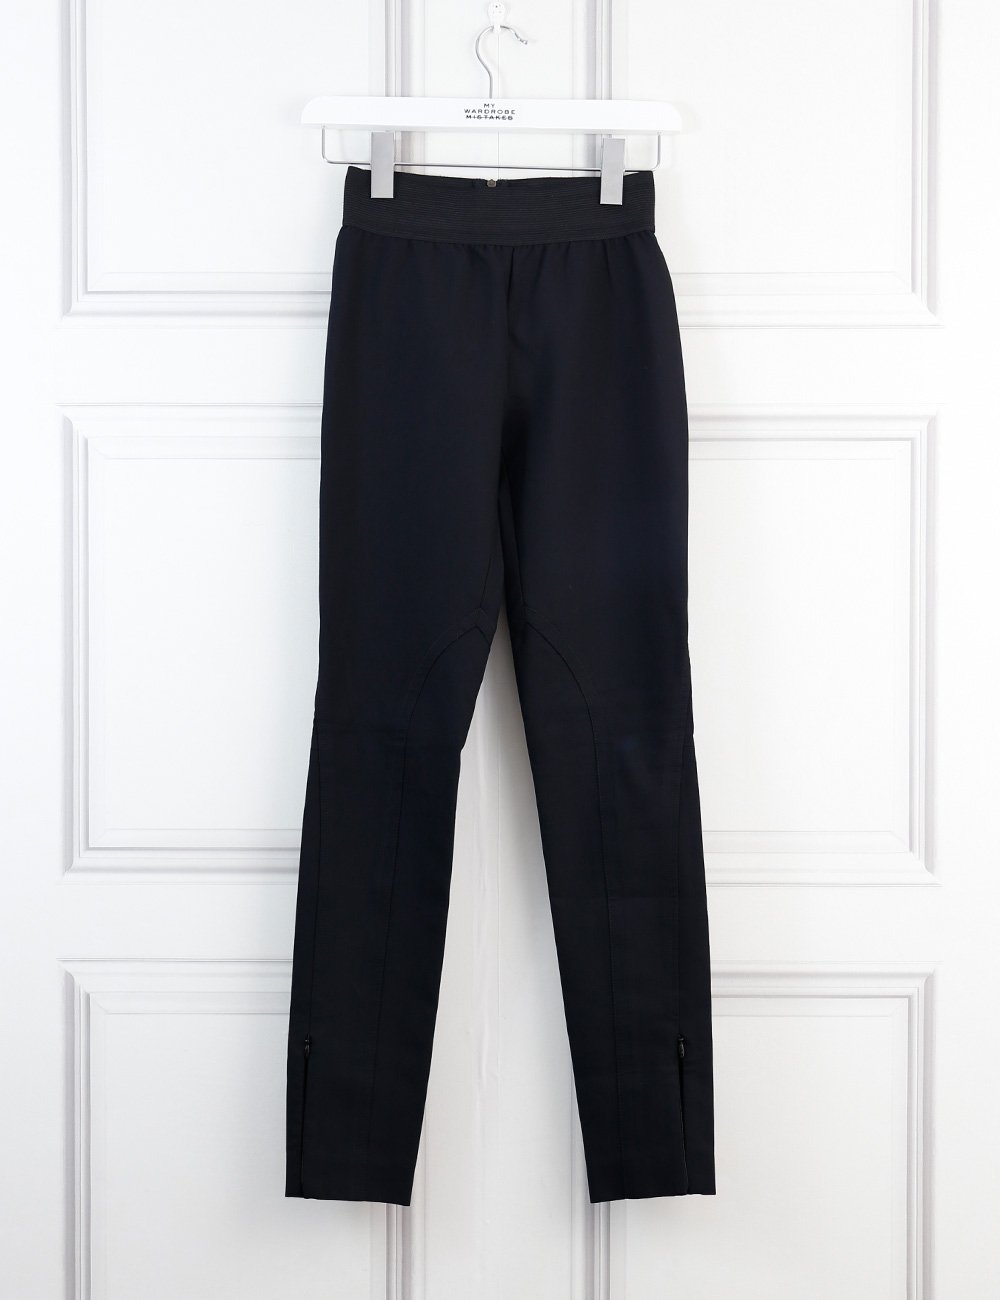 Stella McCartney black skinny trousers with elasticised belt and zipped ankles 6Uk